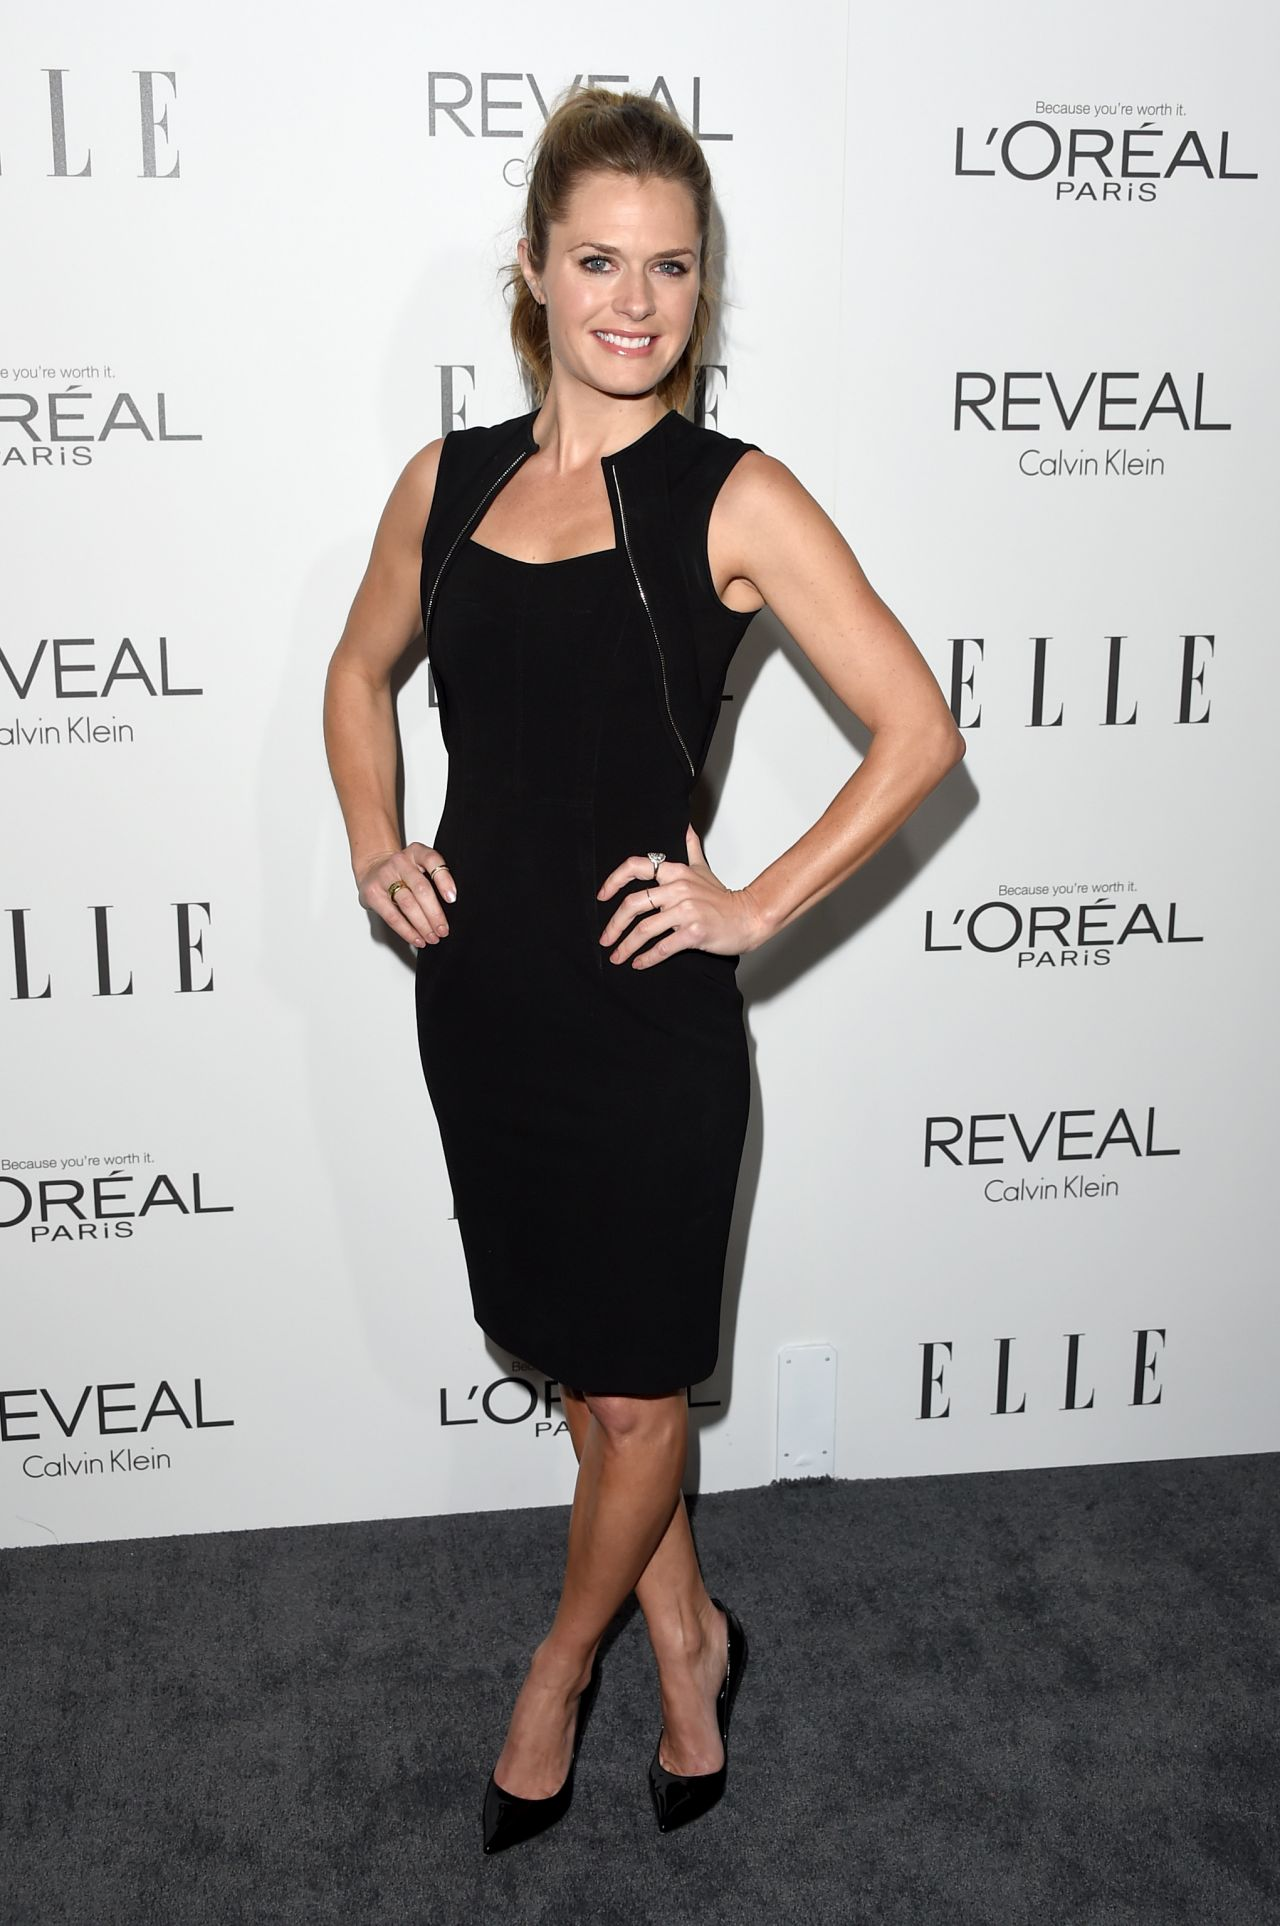 maggie lawson twittermaggie lawson and james roday married, maggie lawson instagram, maggie lawson husband, maggie lawson smallville, maggie lawson and james roday, maggie lawson wallpaper, maggie lawson, maggie lawson married, maggie lawson net worth, maggie lawson imdb, maggie lawson and james roday 2015, maggie lawson and james roday wedding, maggie lawson ben koldyke, maggie lawson twitter, maggie lawson alicia silverstone, maggie lawson james roday engaged, maggie lawson 2015, maggie lawson and benjamin koldyke, maggie lawson facebook, maggie lawson marriage